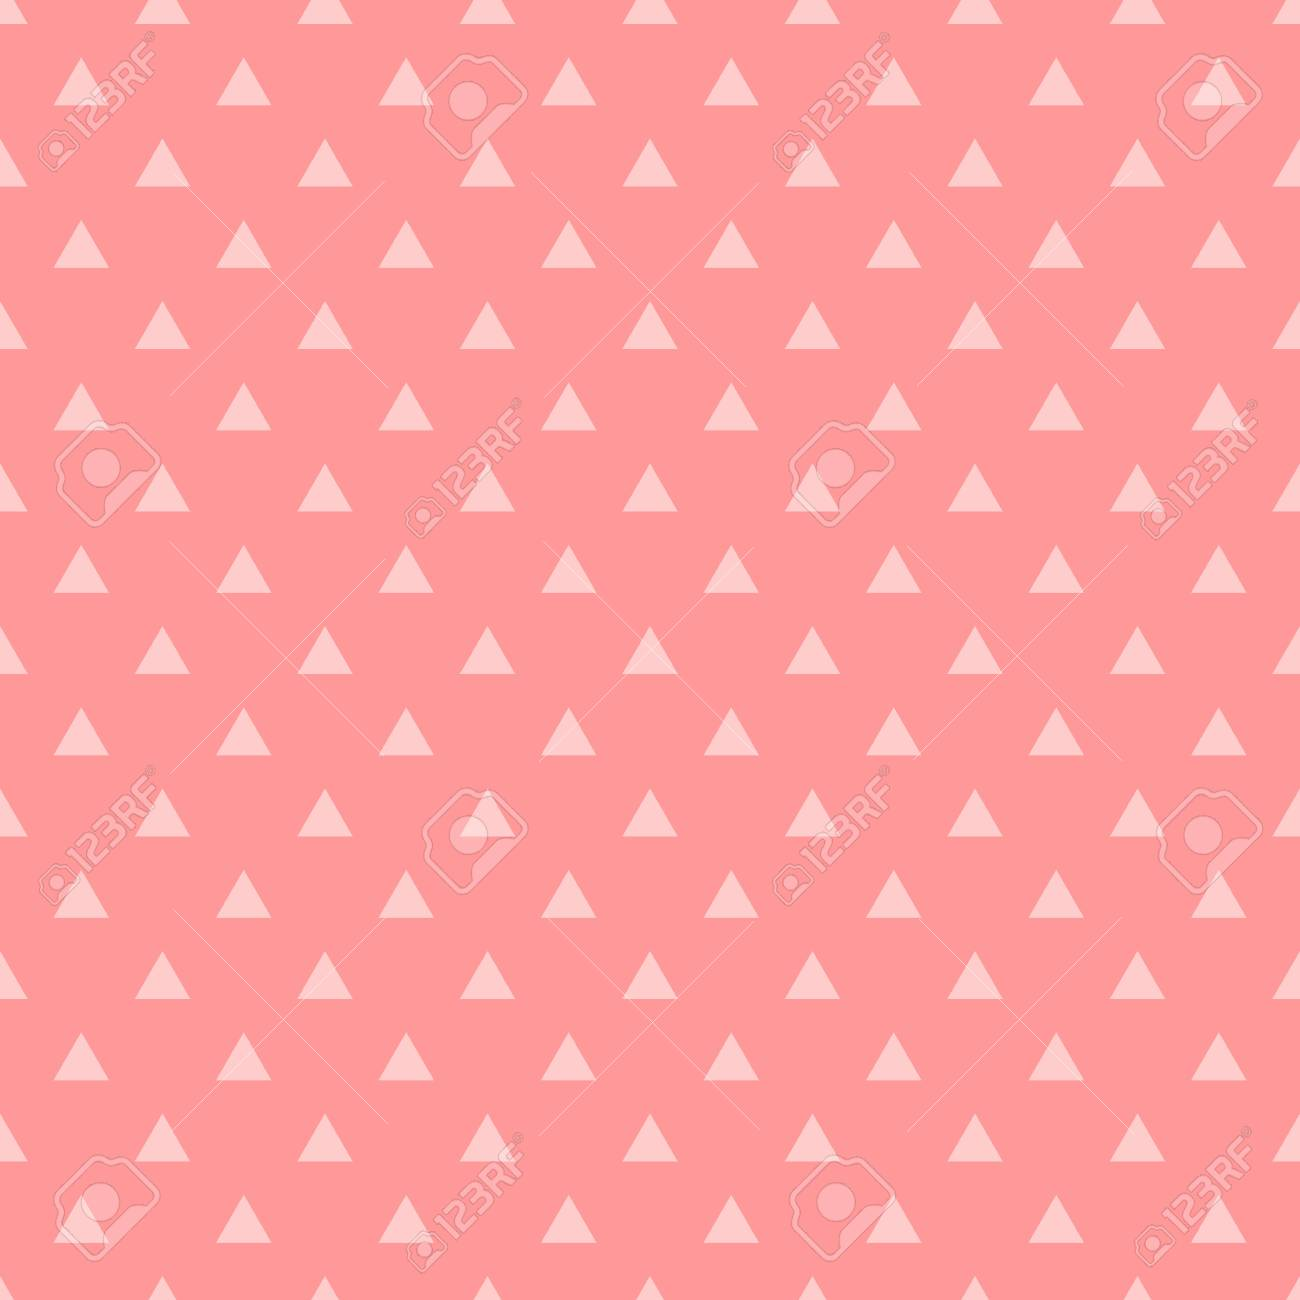 tile vector pattern with pink triangles on pastel pink background